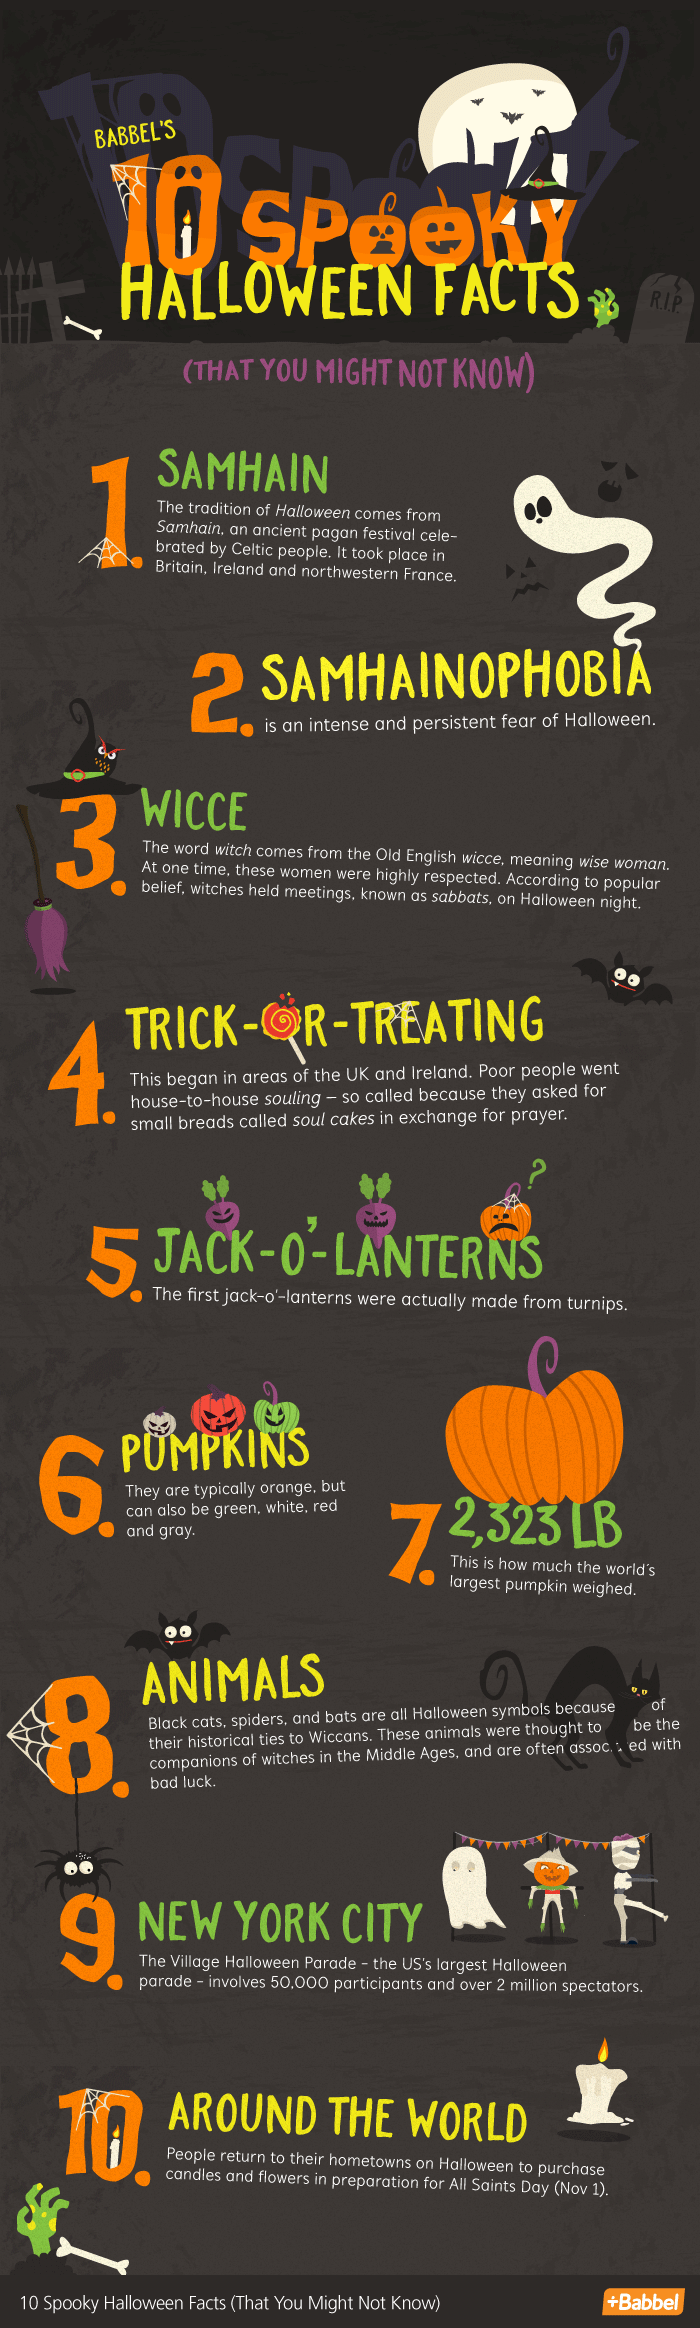 10 Spooky Halloween Facts